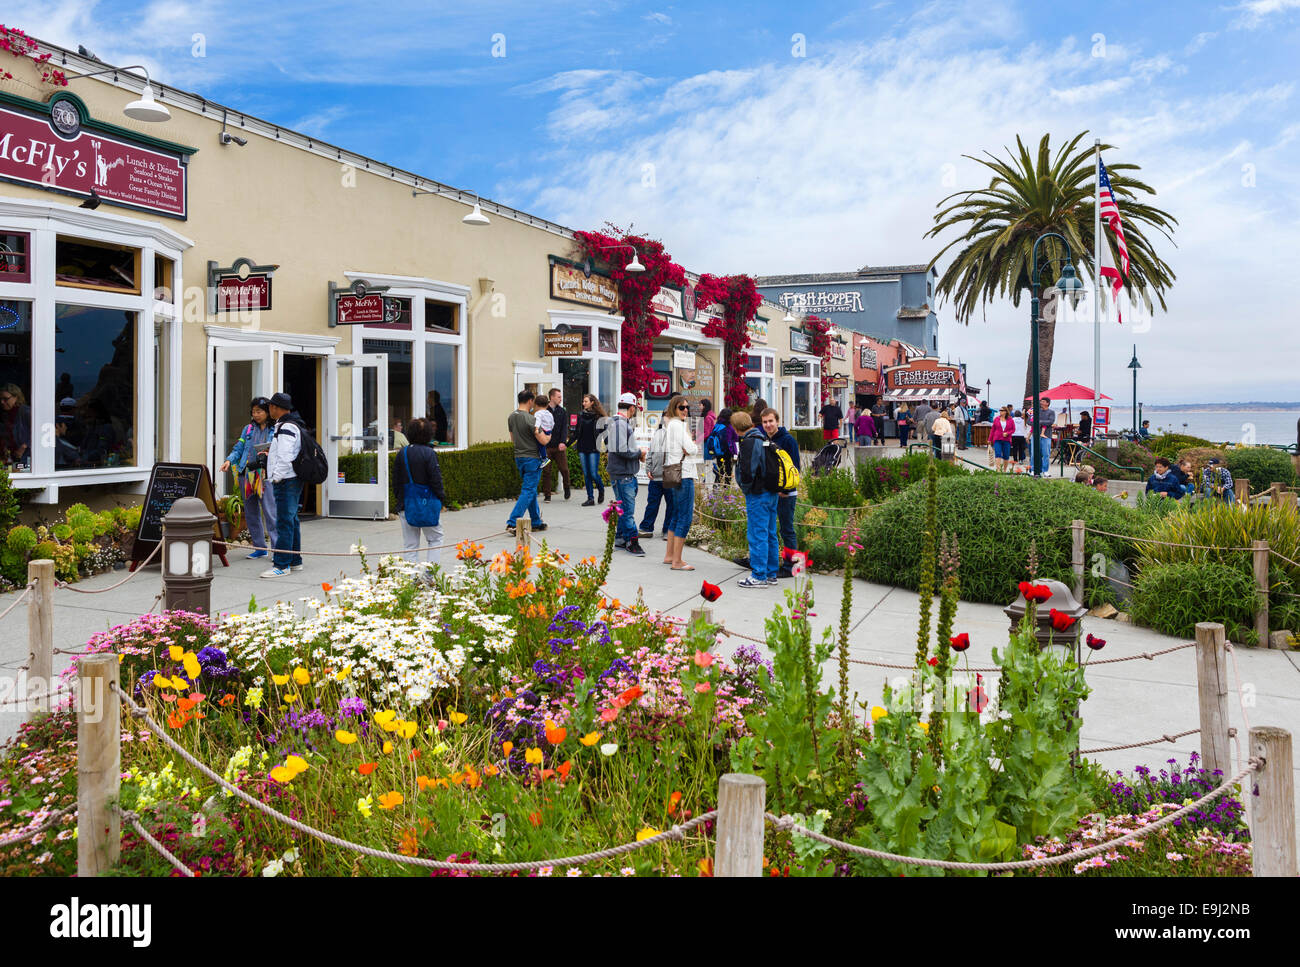 Restaurants And Stores In Steinbeck Plaza Cannery Row